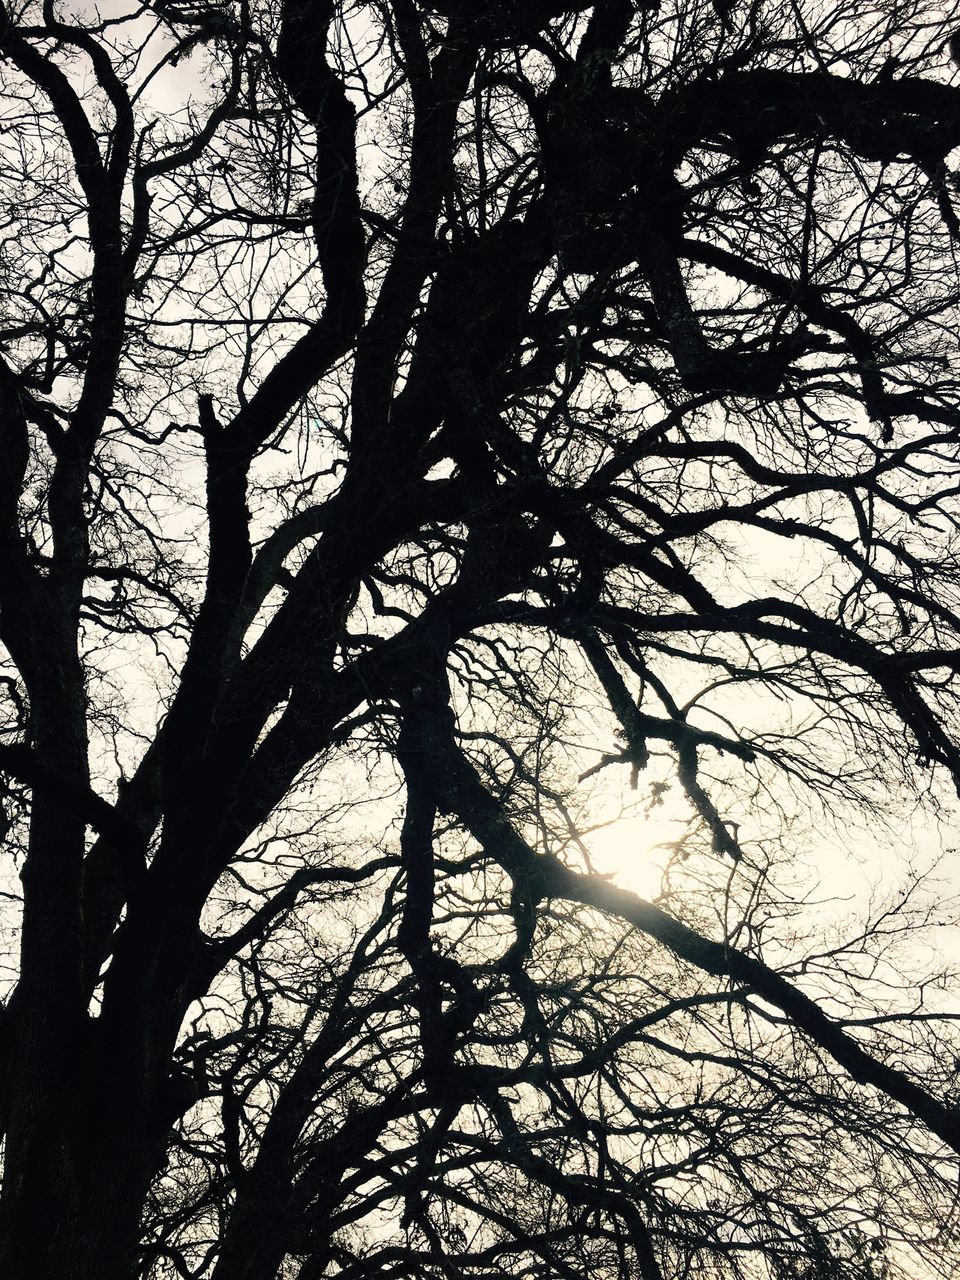 tree, branch, nature, beauty in nature, low angle view, no people, tranquility, bare tree, day, outdoors, tree trunk, scenics, sky